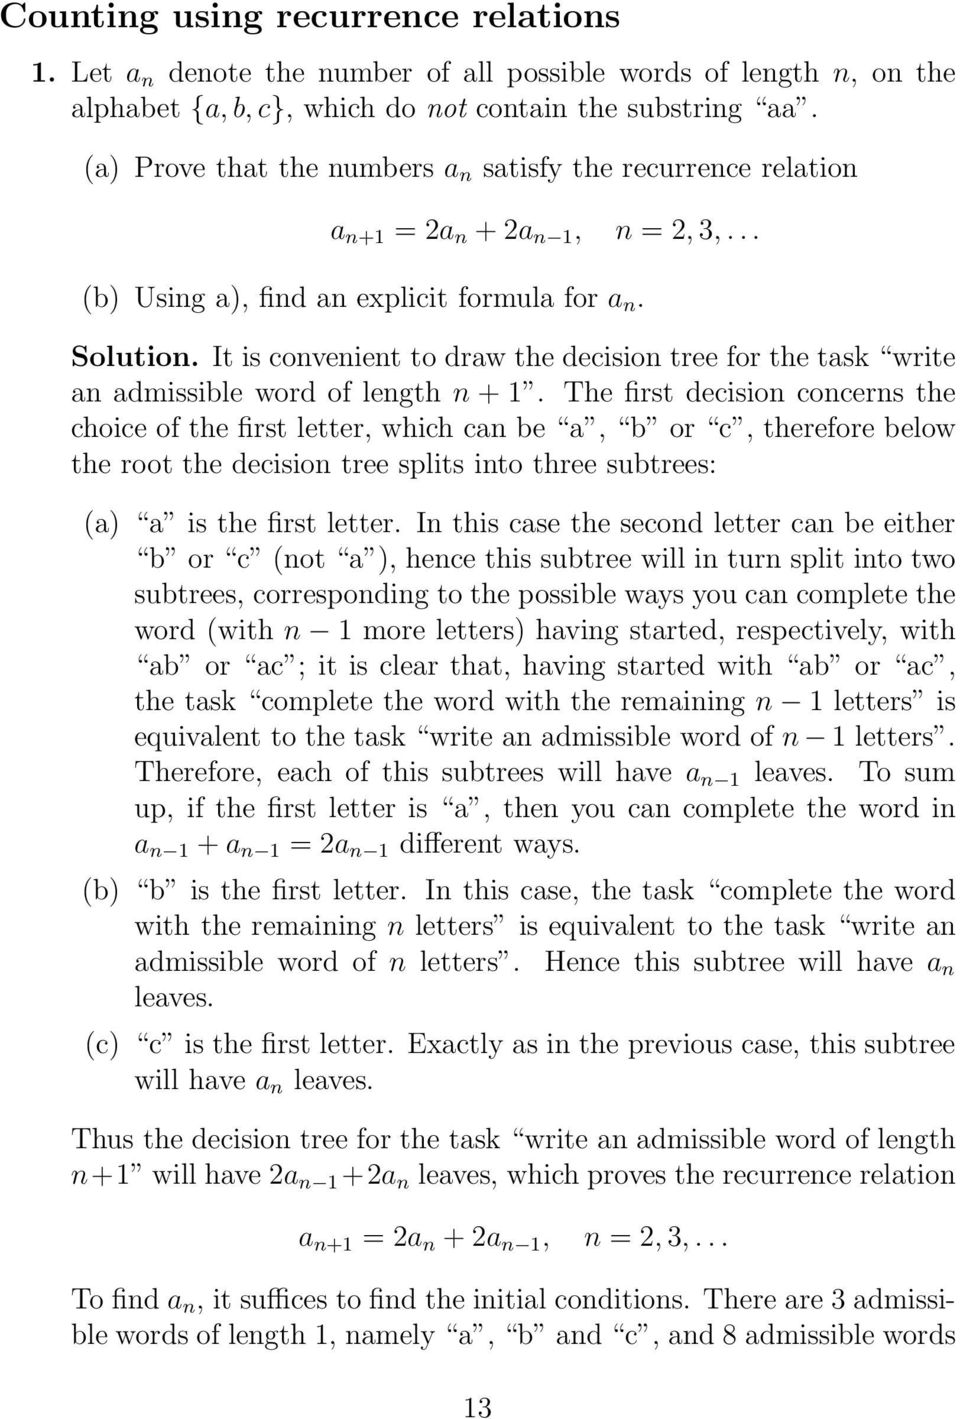 It is convenient to draw the decision tree for the tas write an admissible word of length n + 1.